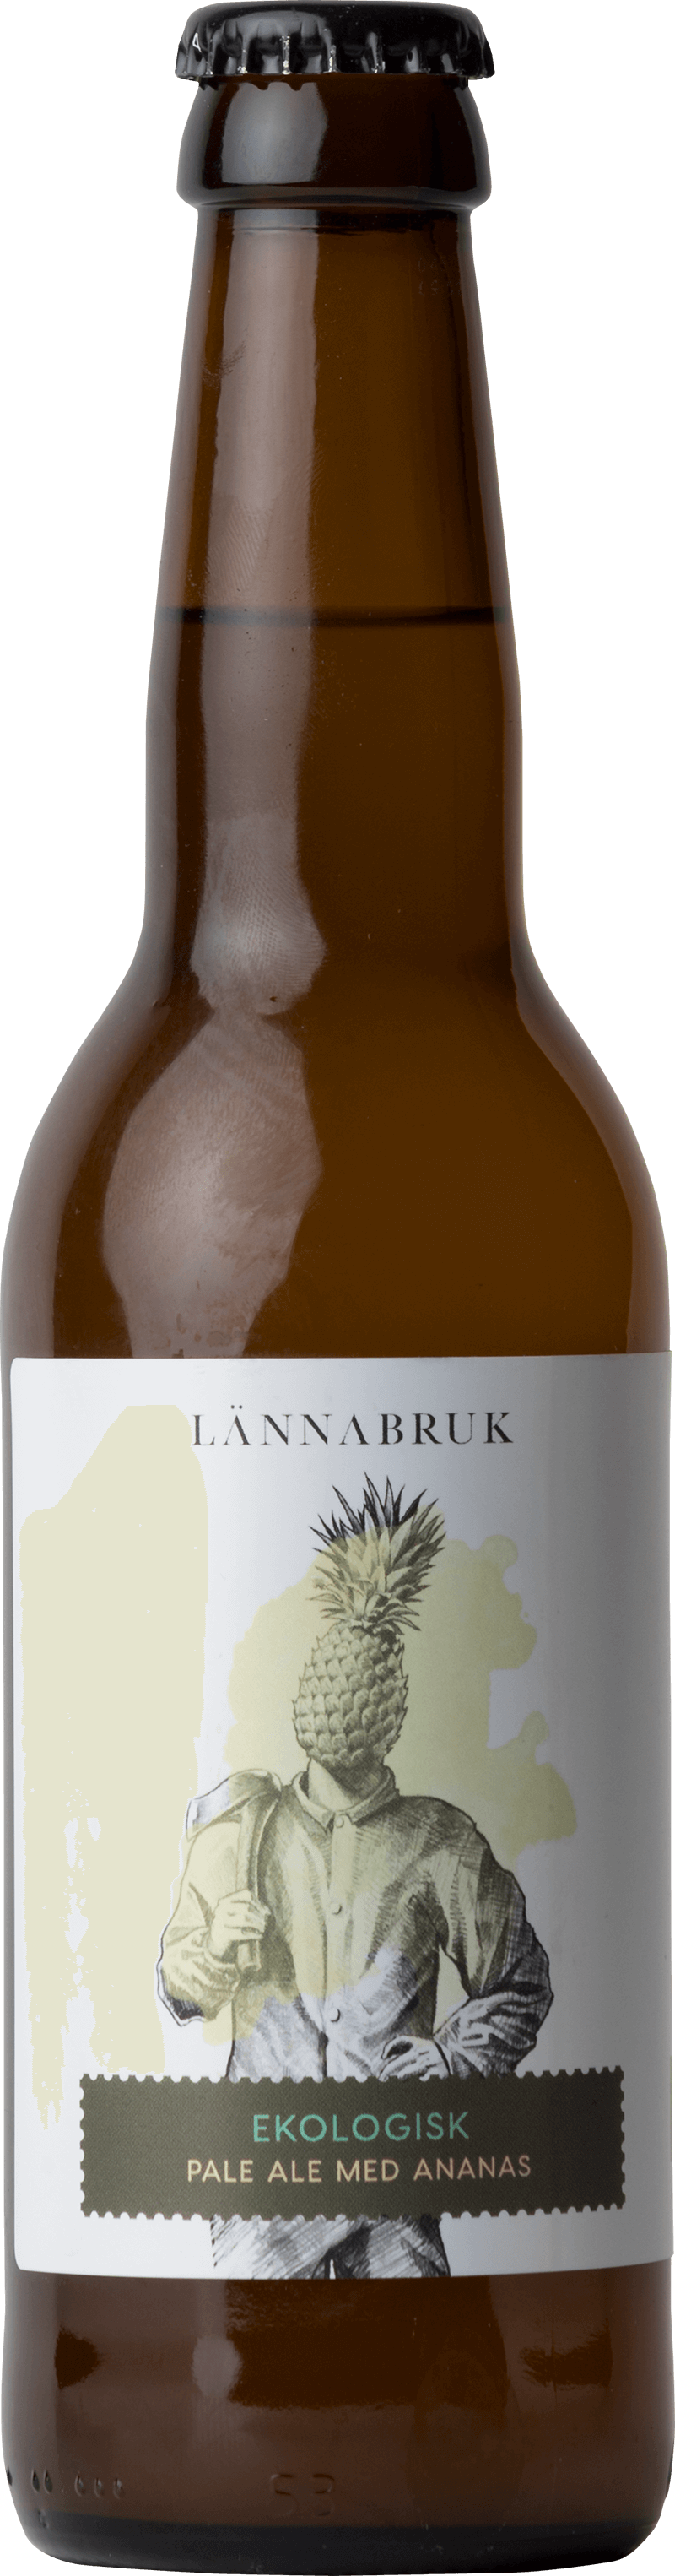 Pale ale med ananas